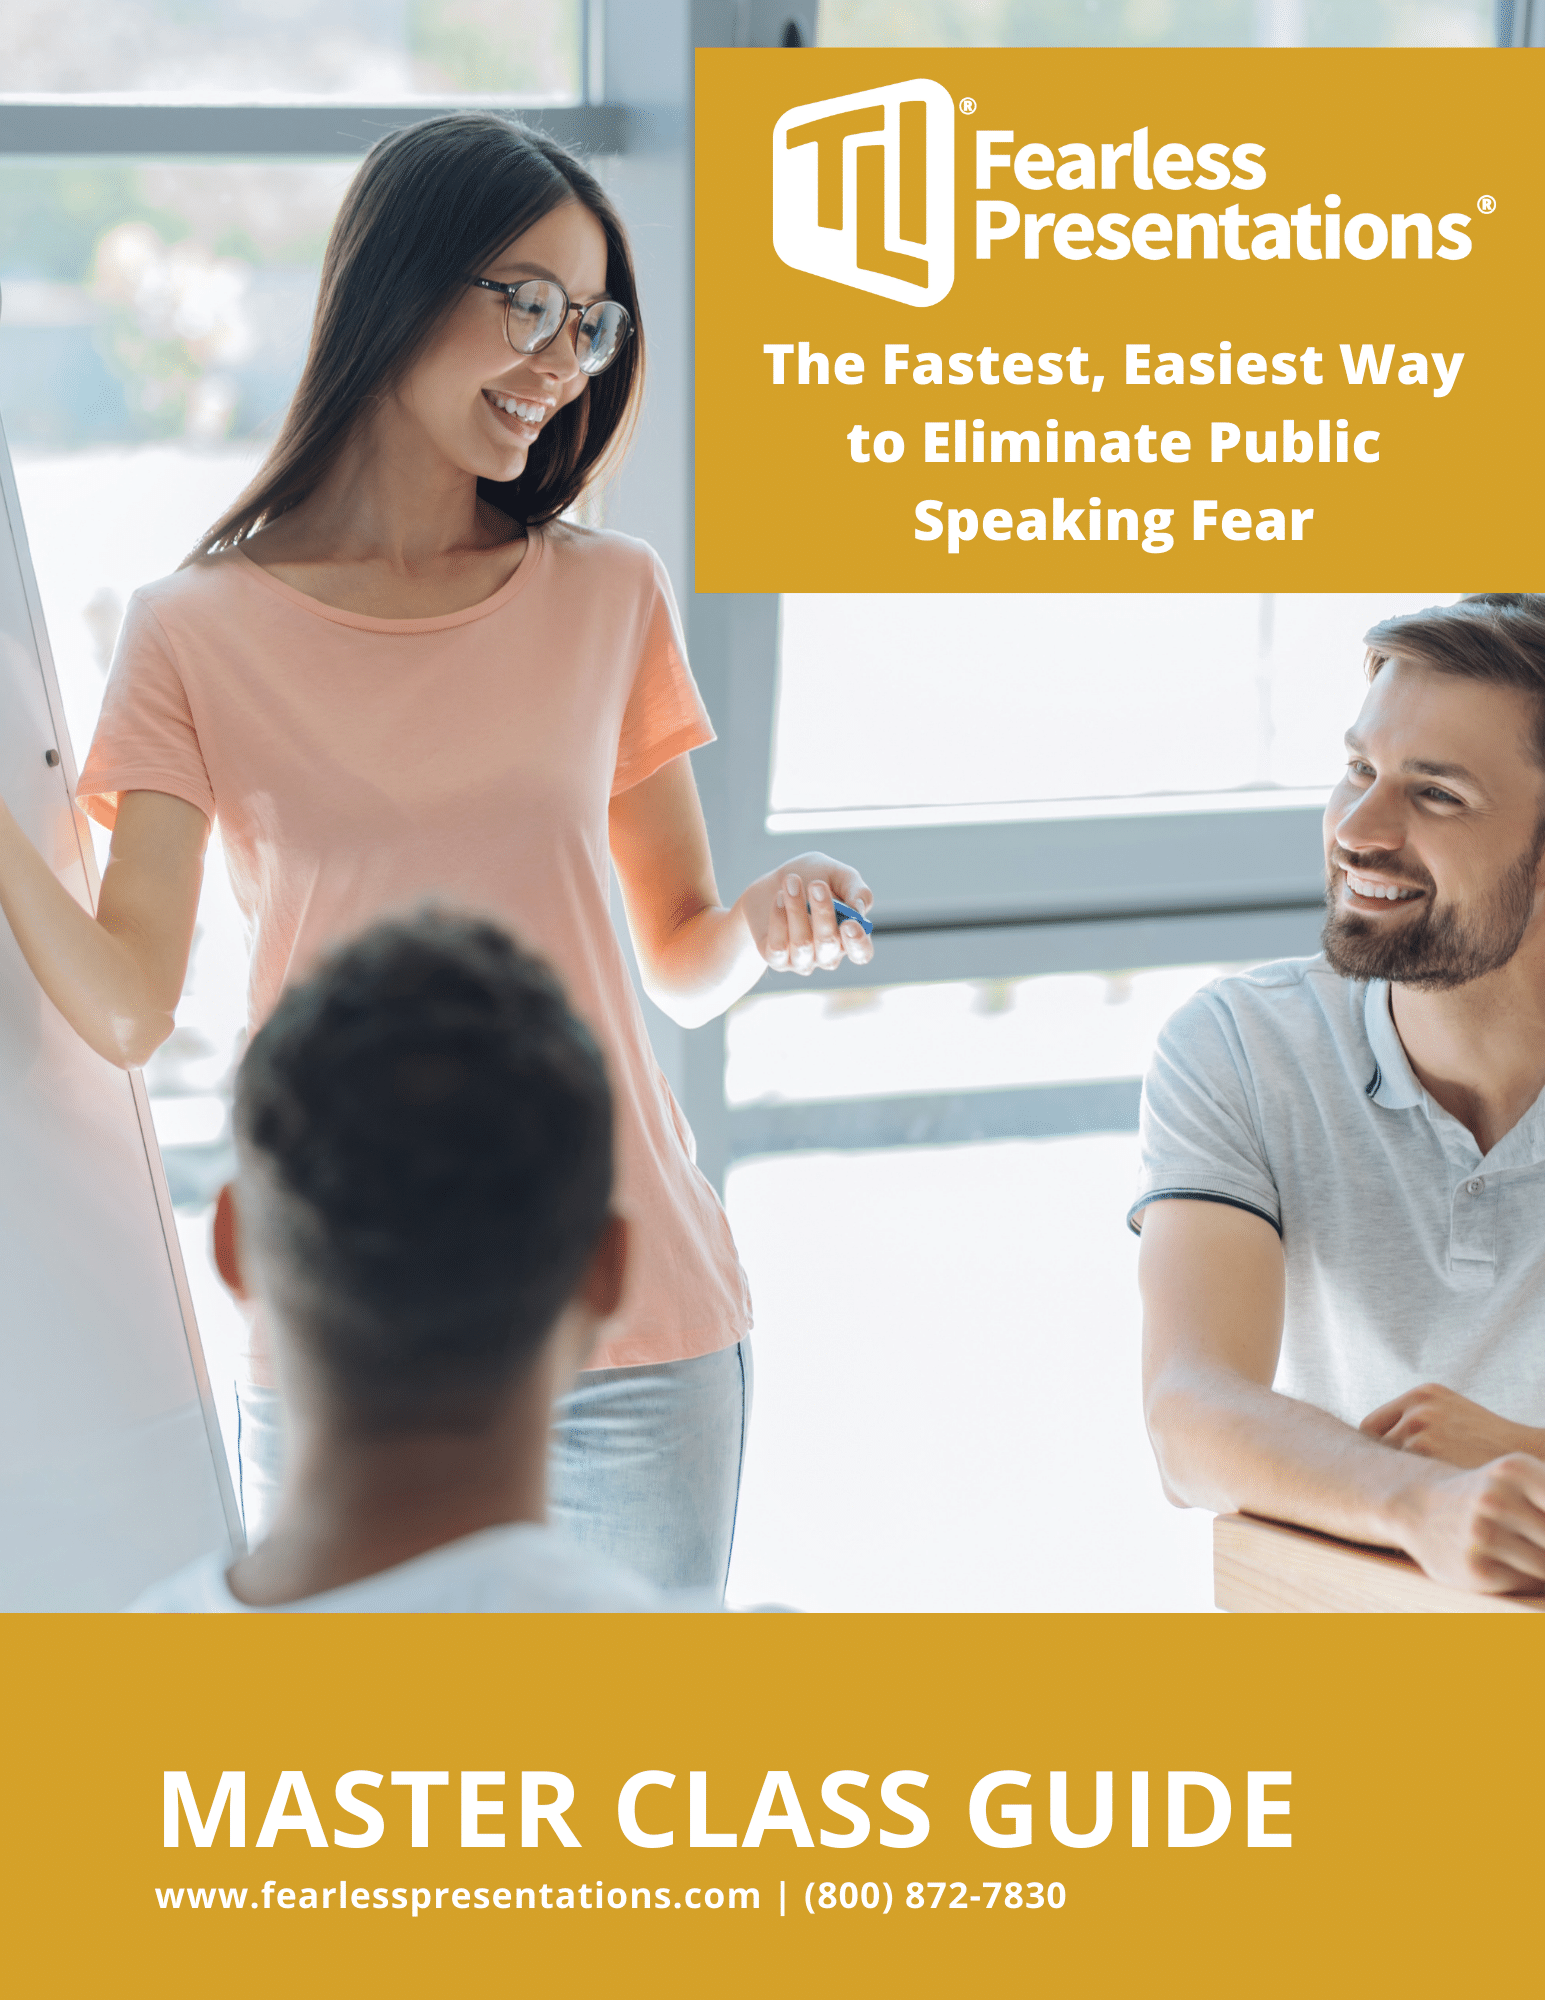 Fearless Presentations Master Class Guide